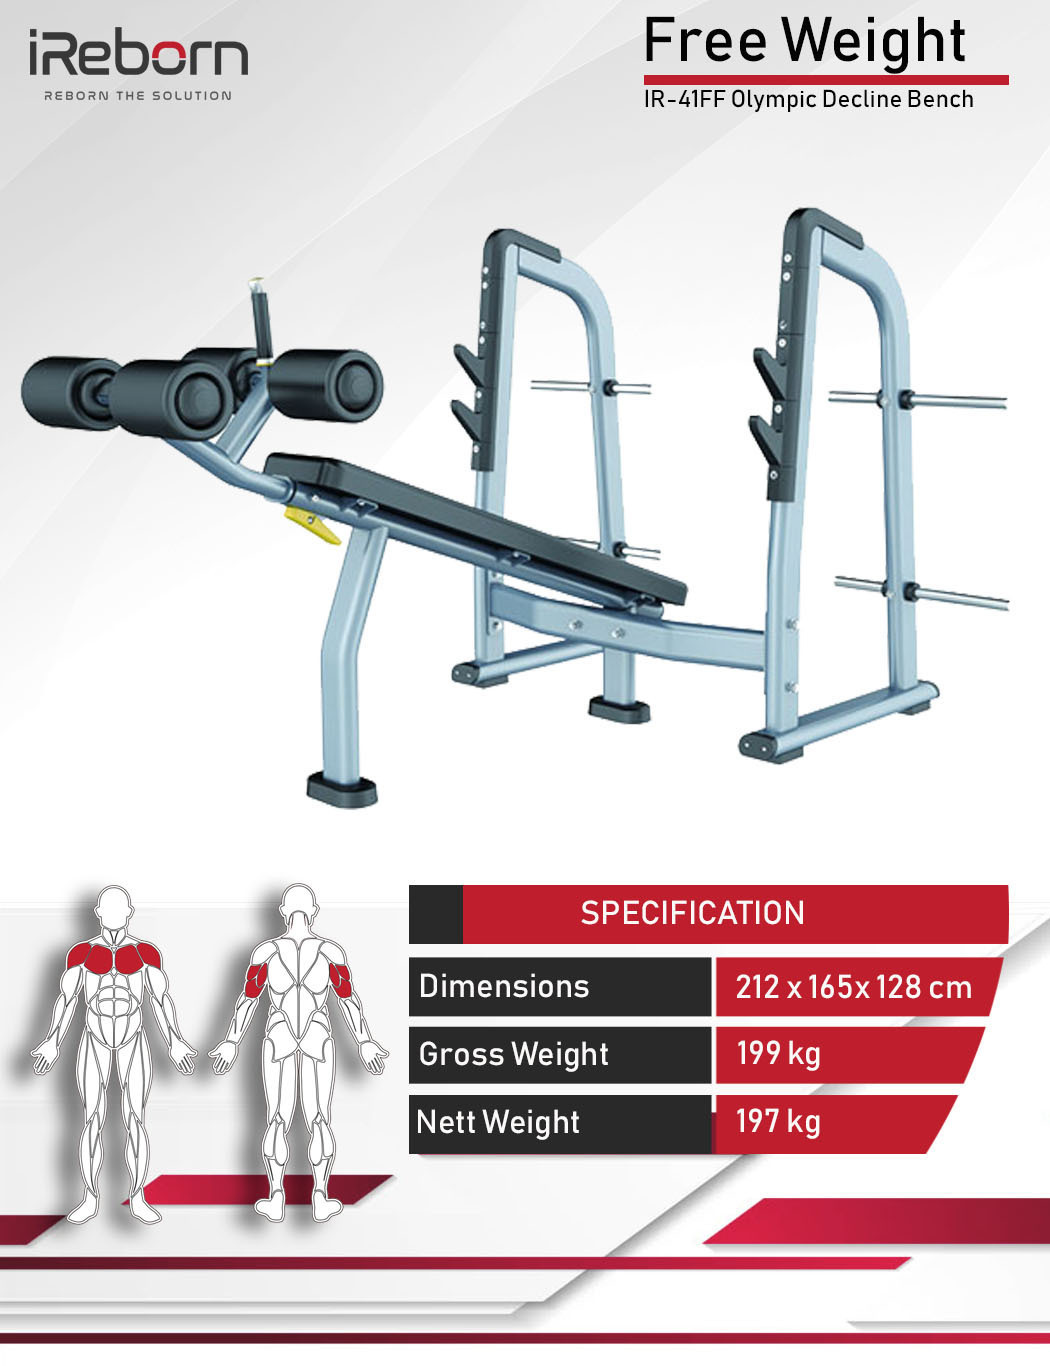 IR-41FF Olympic Decline Bench 10